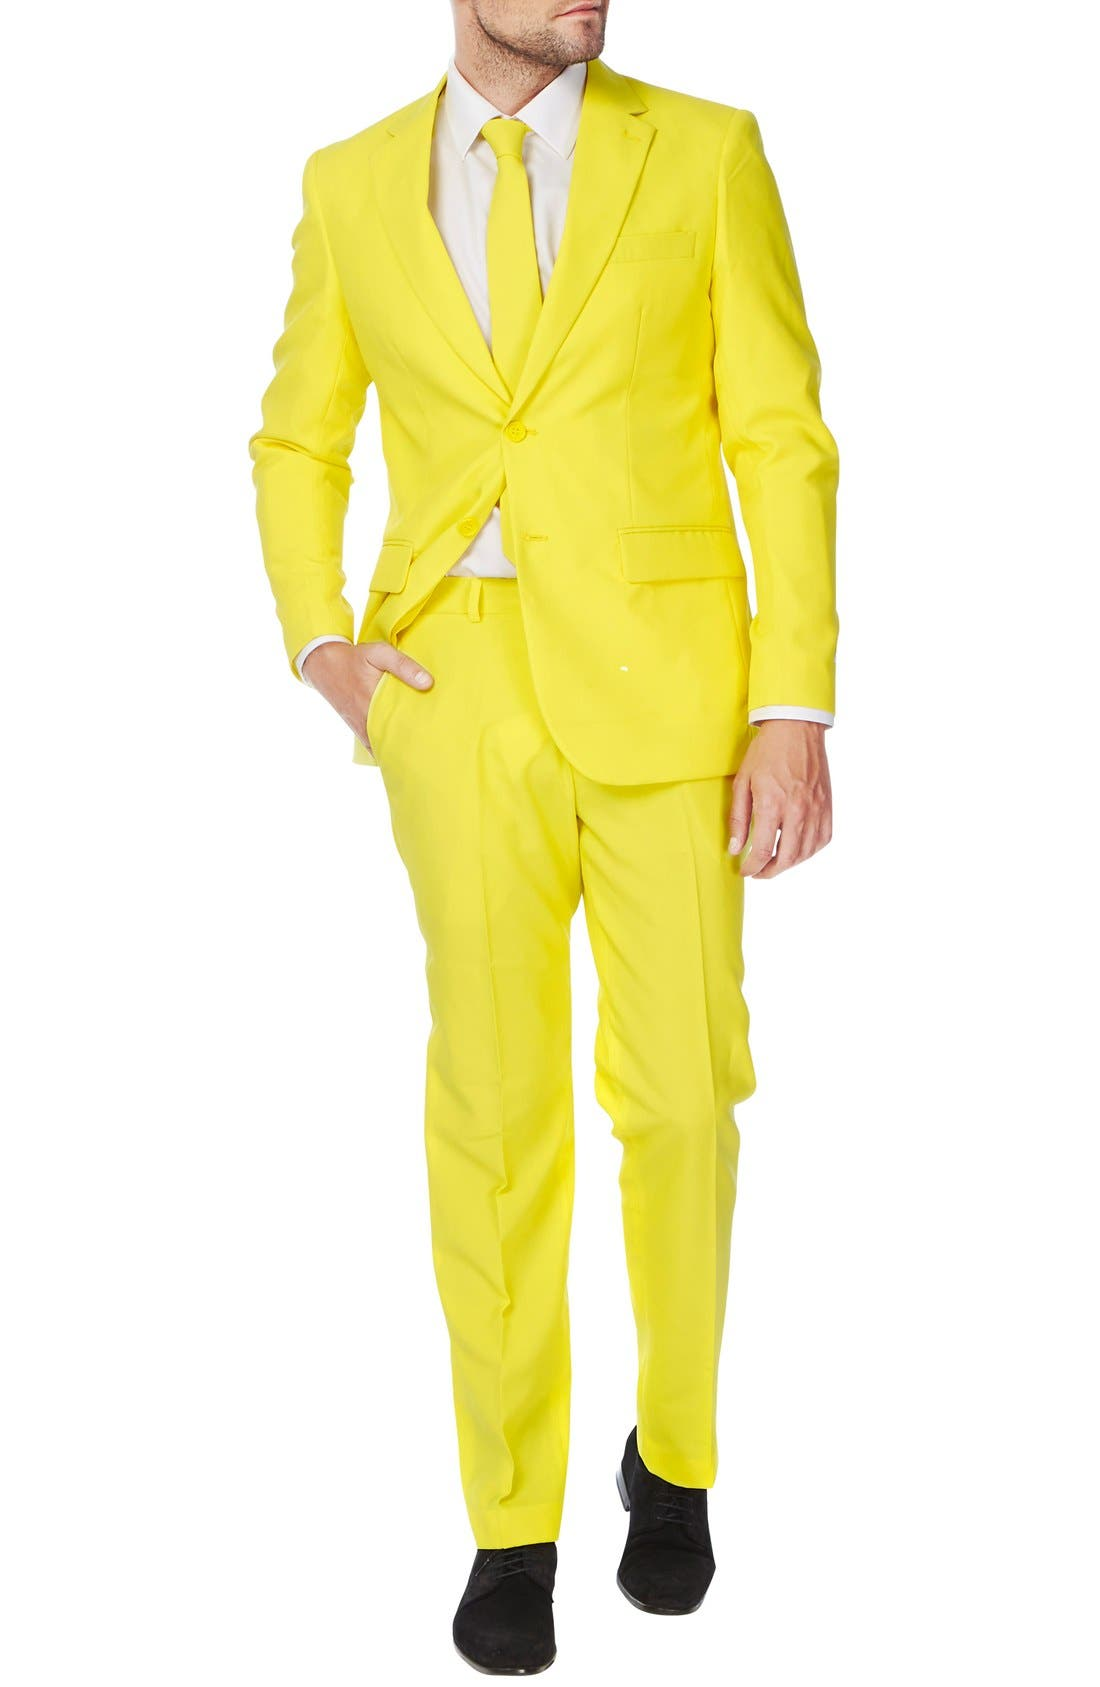 Alternate Image 4  - OppoSuits 'Yellow Fellow' Trim Fit Two-Piece Suit with Tie